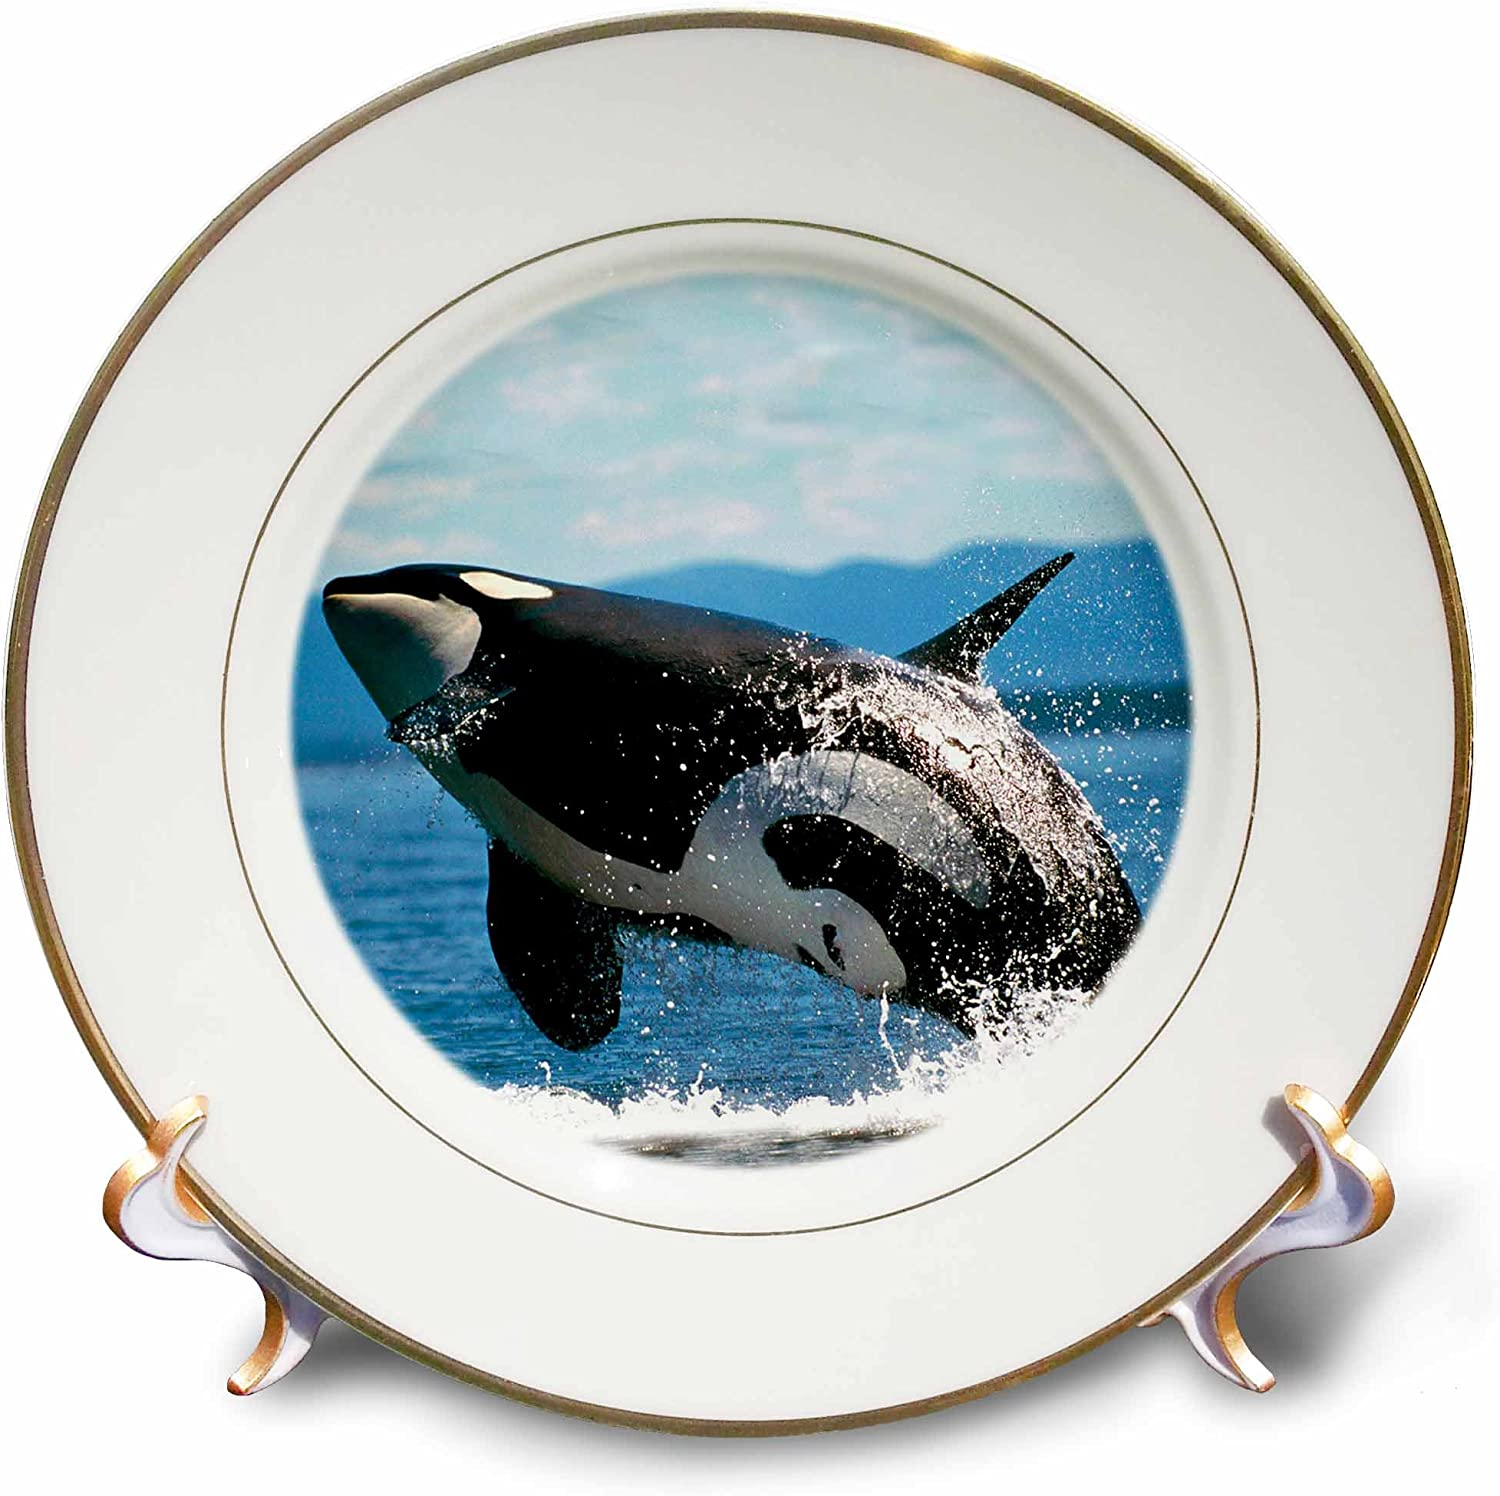 Amazon Com 3drose Cp 2545 1 Killer Whale Airbourne Porcelain Plate 8 Inch Home Kitchen